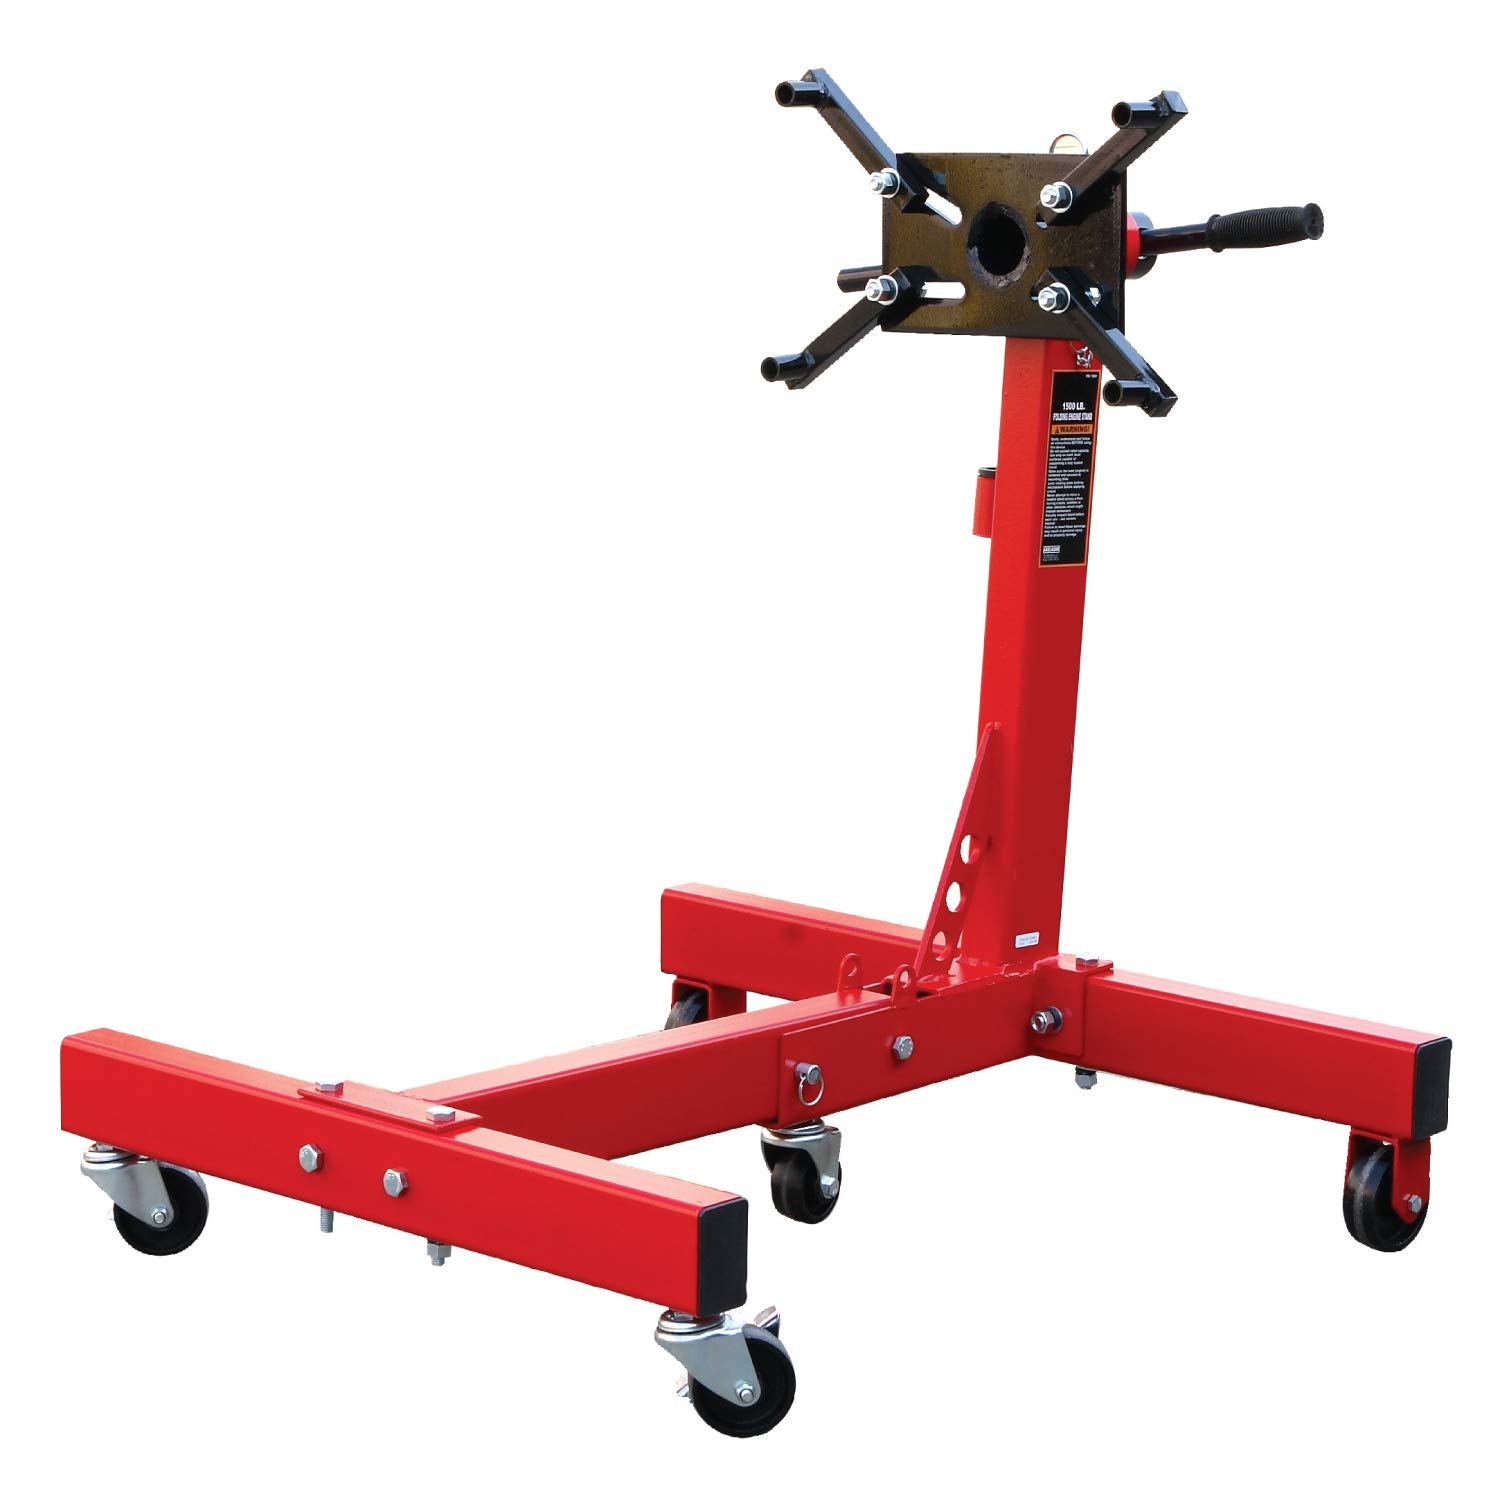 Torin Big Red Steel Rotating Engine Stand with Foldable Frame: 3/4 Ton (1,500 lb) Capacity by Torin